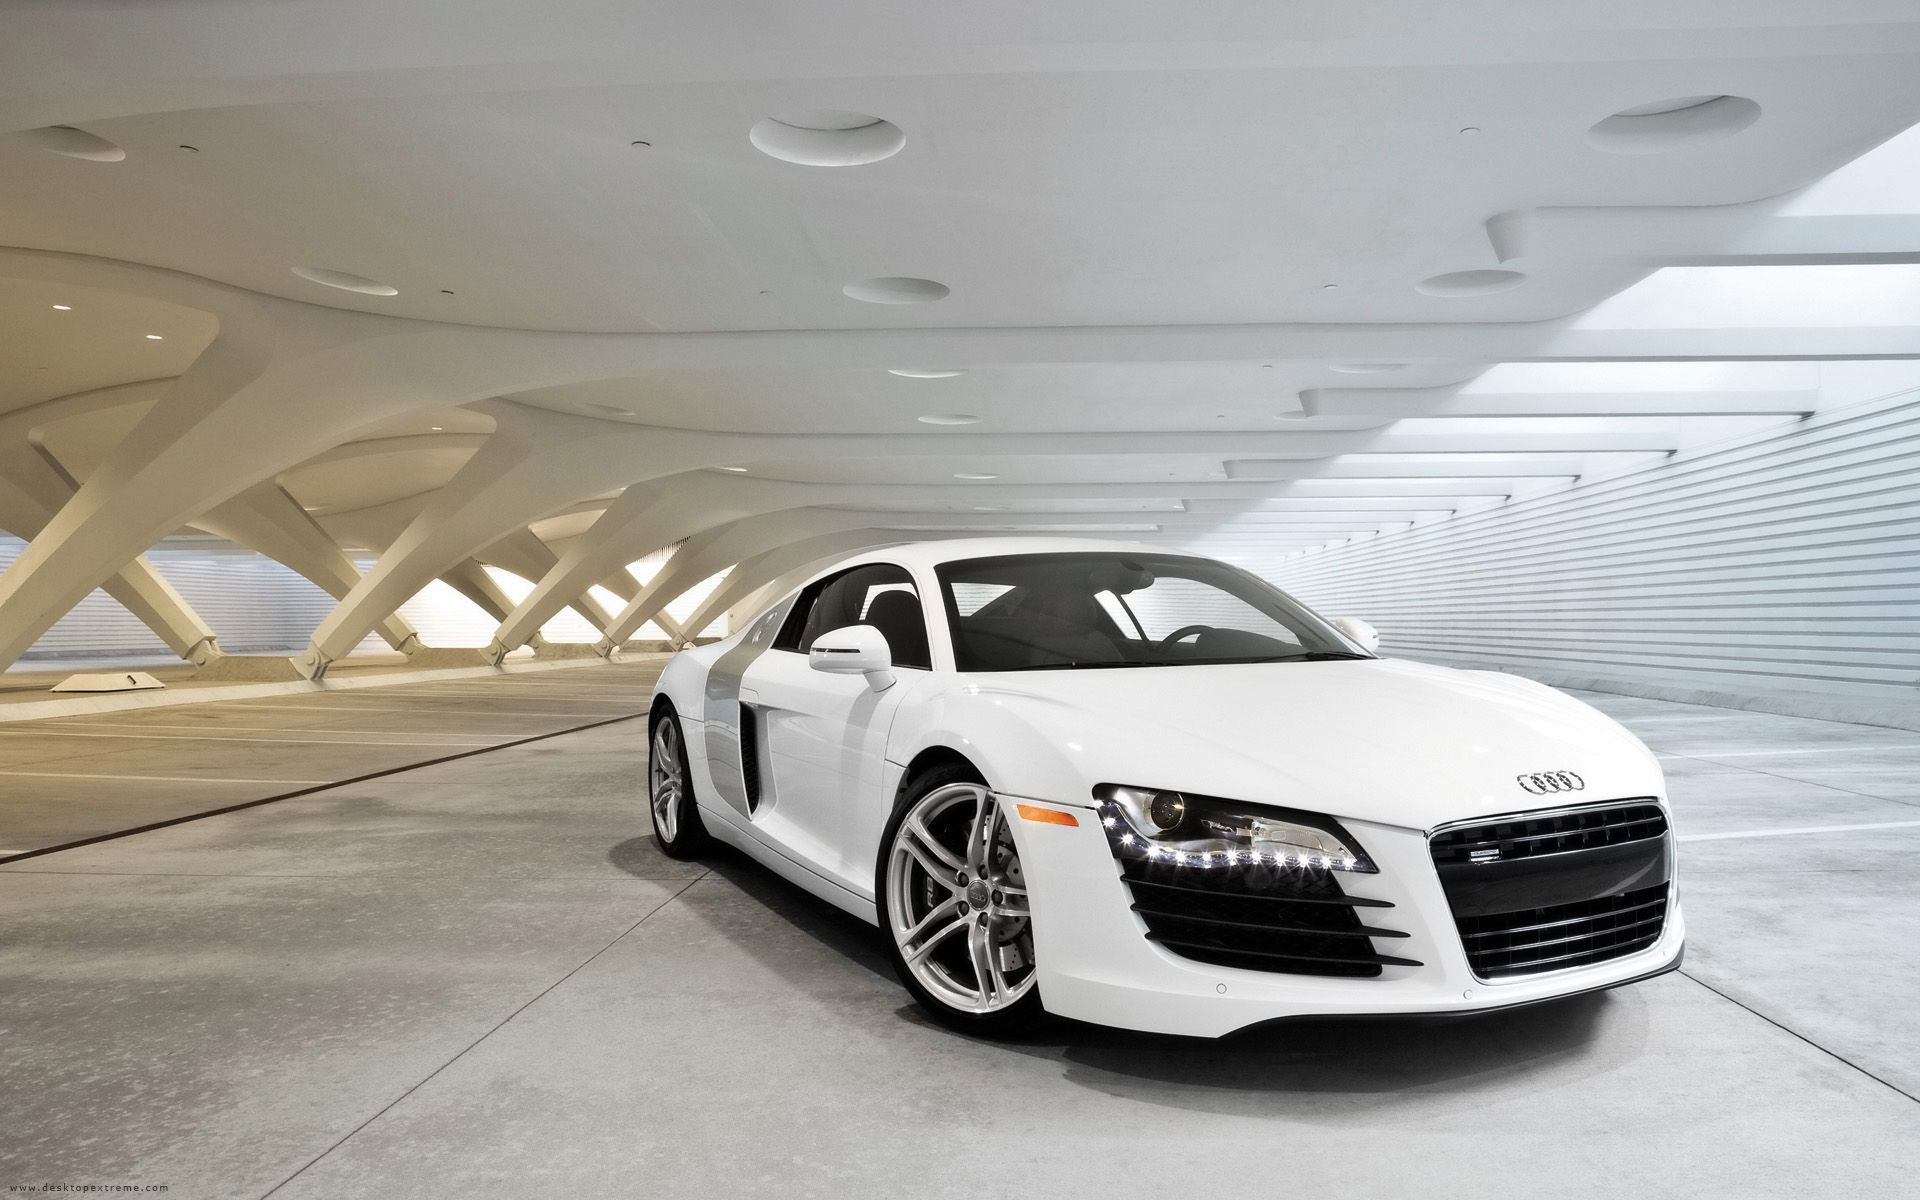 Find This Pin And More On Luxury Cars